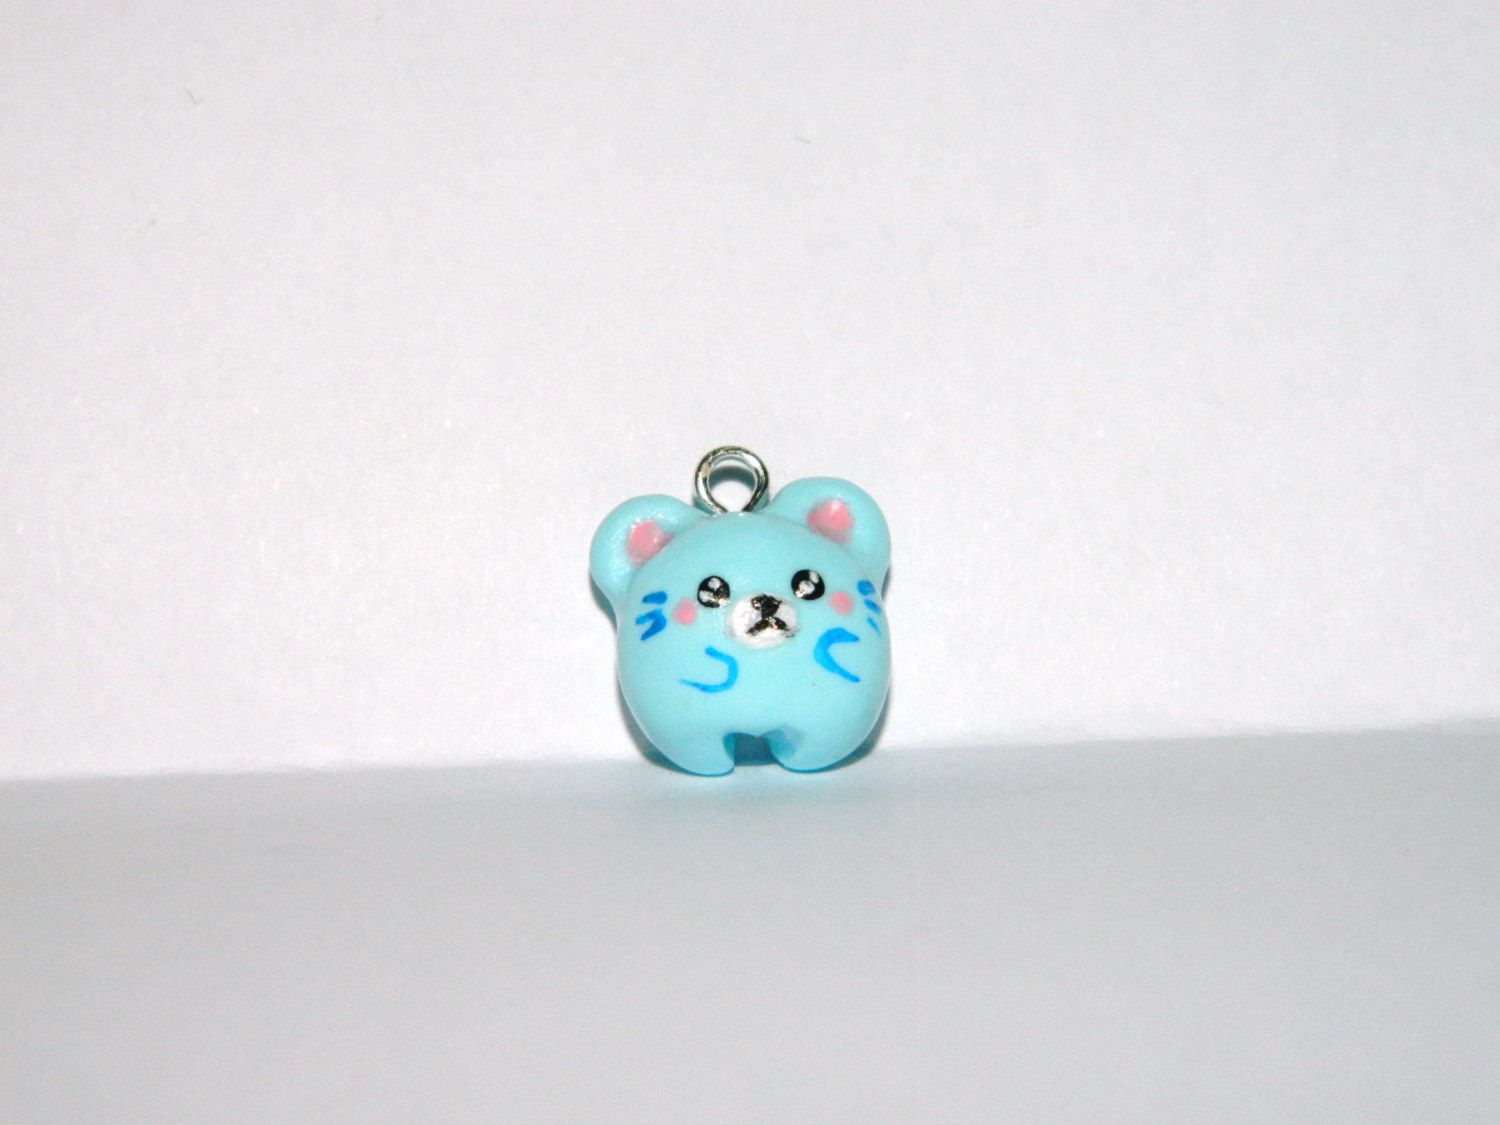 Charming kawaii blue mouse charm.-Polymer clay charm-Polymer clay mouse-Kawaii polymer clay charms-Kawaii little mouse-Blue mouse charm by EVAMARE on Etsy